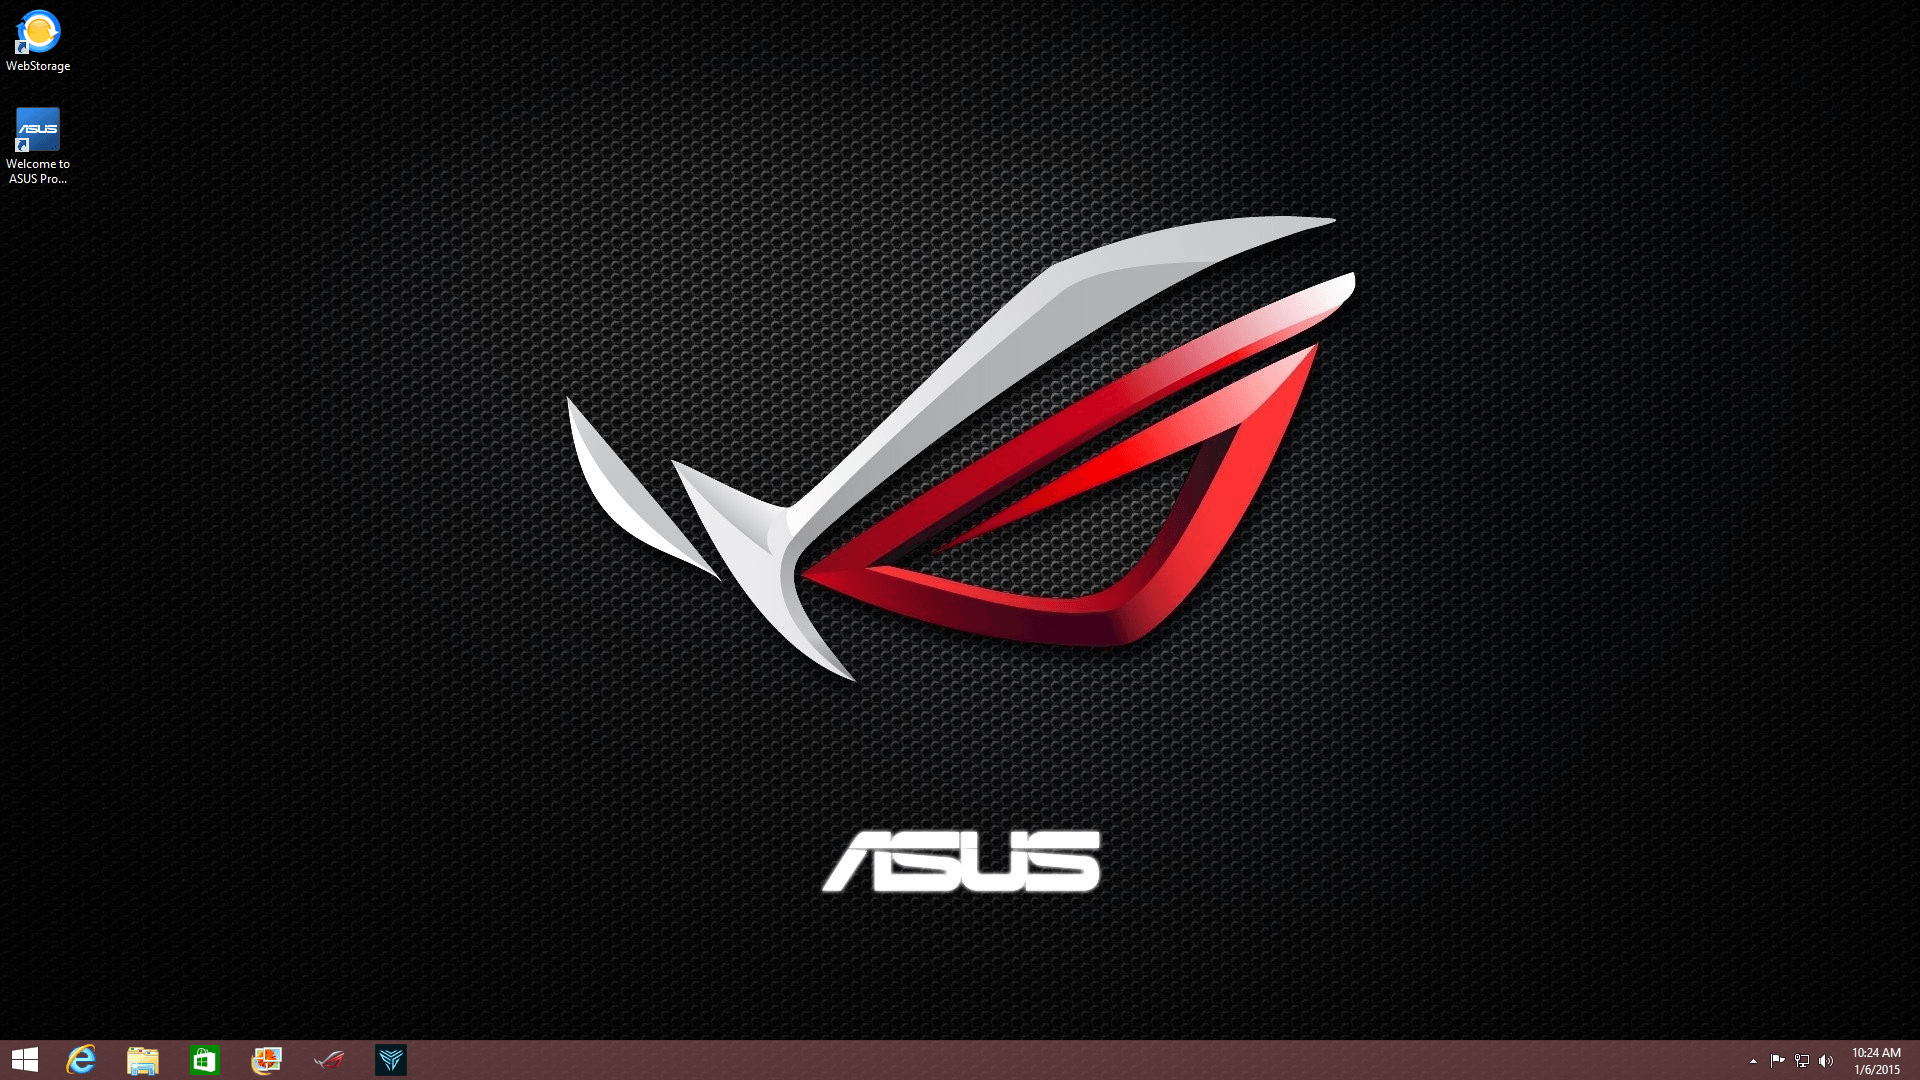 ASUS Republic of Gamers G20 Gaming PC Review – Techgage